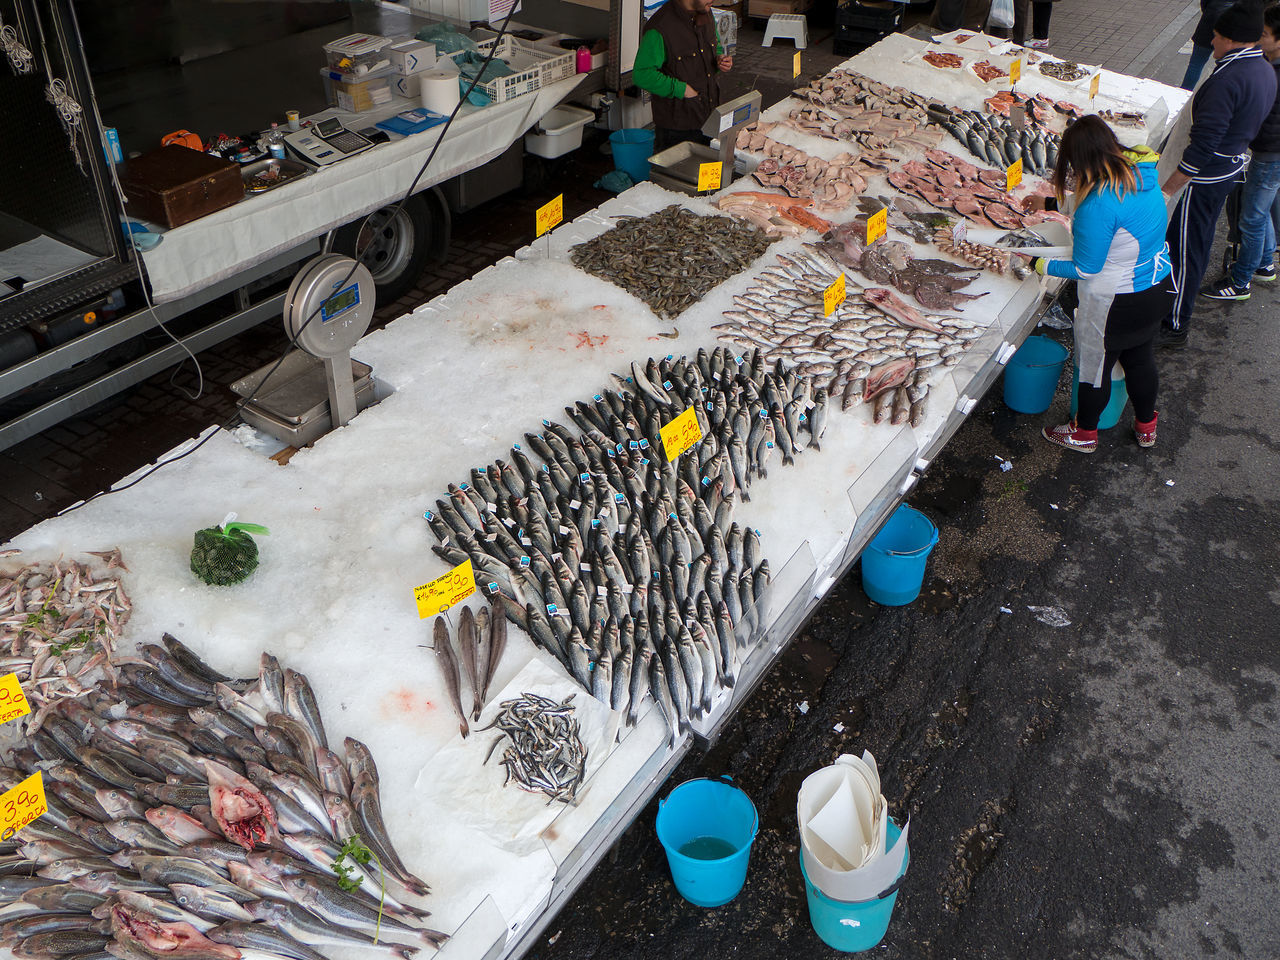 A Lot Of Fish Buying Choice Fish Flea Market Food Food And Drink Fresh Fish Fresh Fish Market Freshness Friday Fish Healthy Eating Iced Lifestyles Market Market Fish Market Stall Occupation Outdoor Market Outdoors People Retail  Selling Street Market